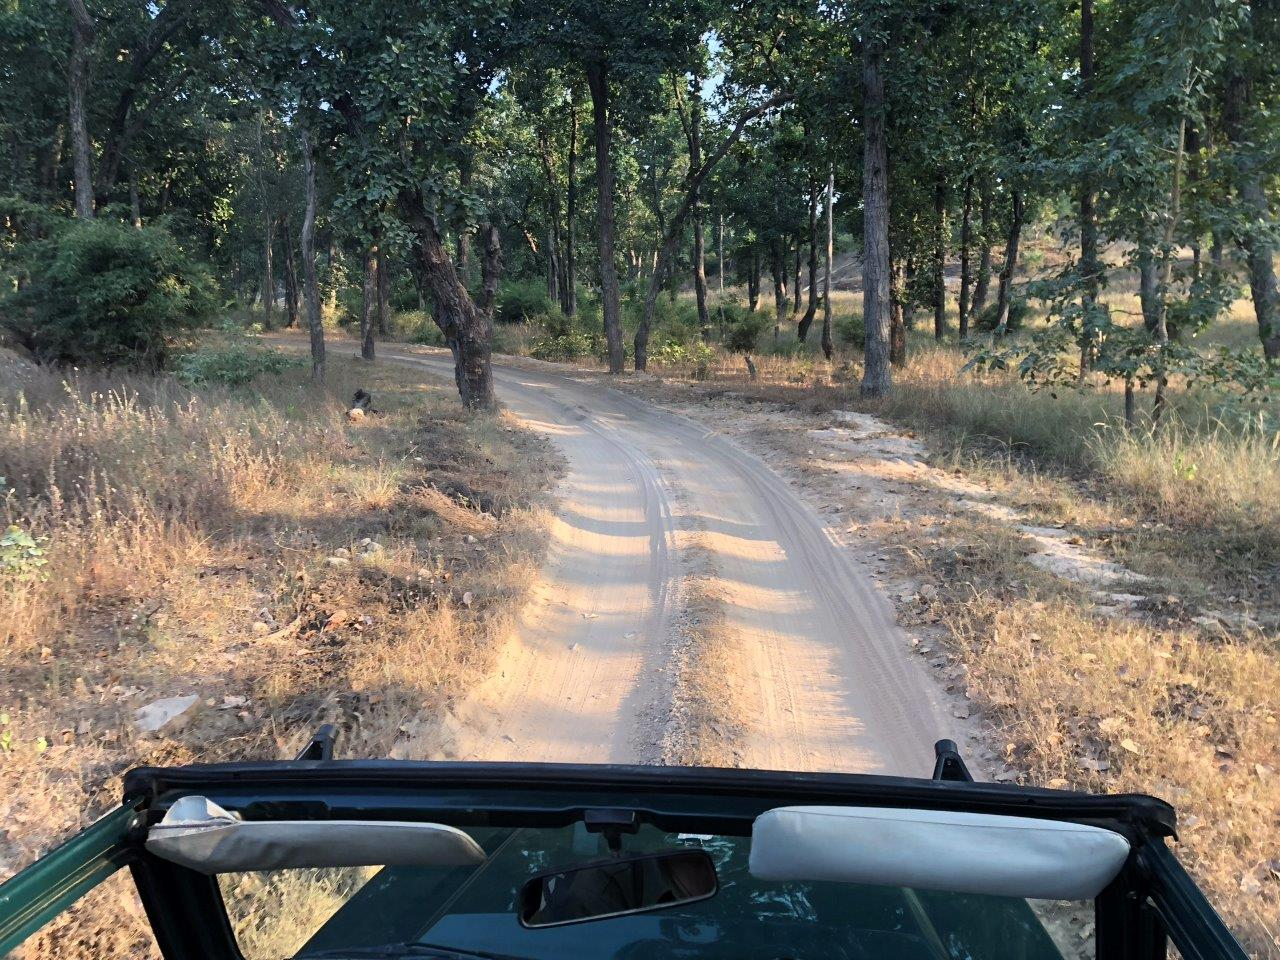 Driving through one of India's national parks in search of tigers.